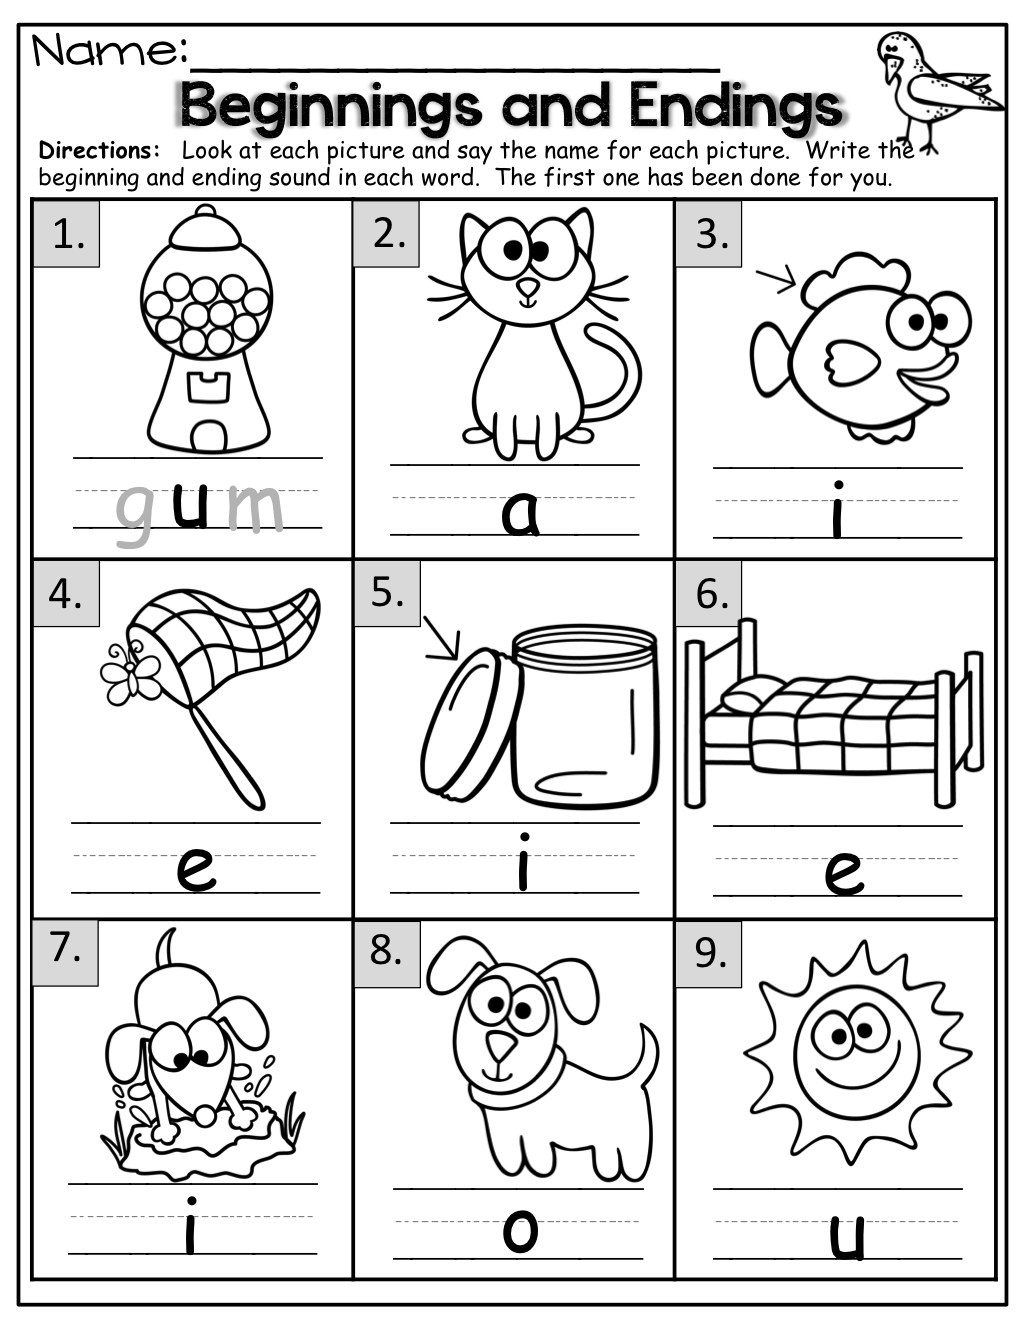 Beginning And Ending Sound Worksheets For Kindergarten